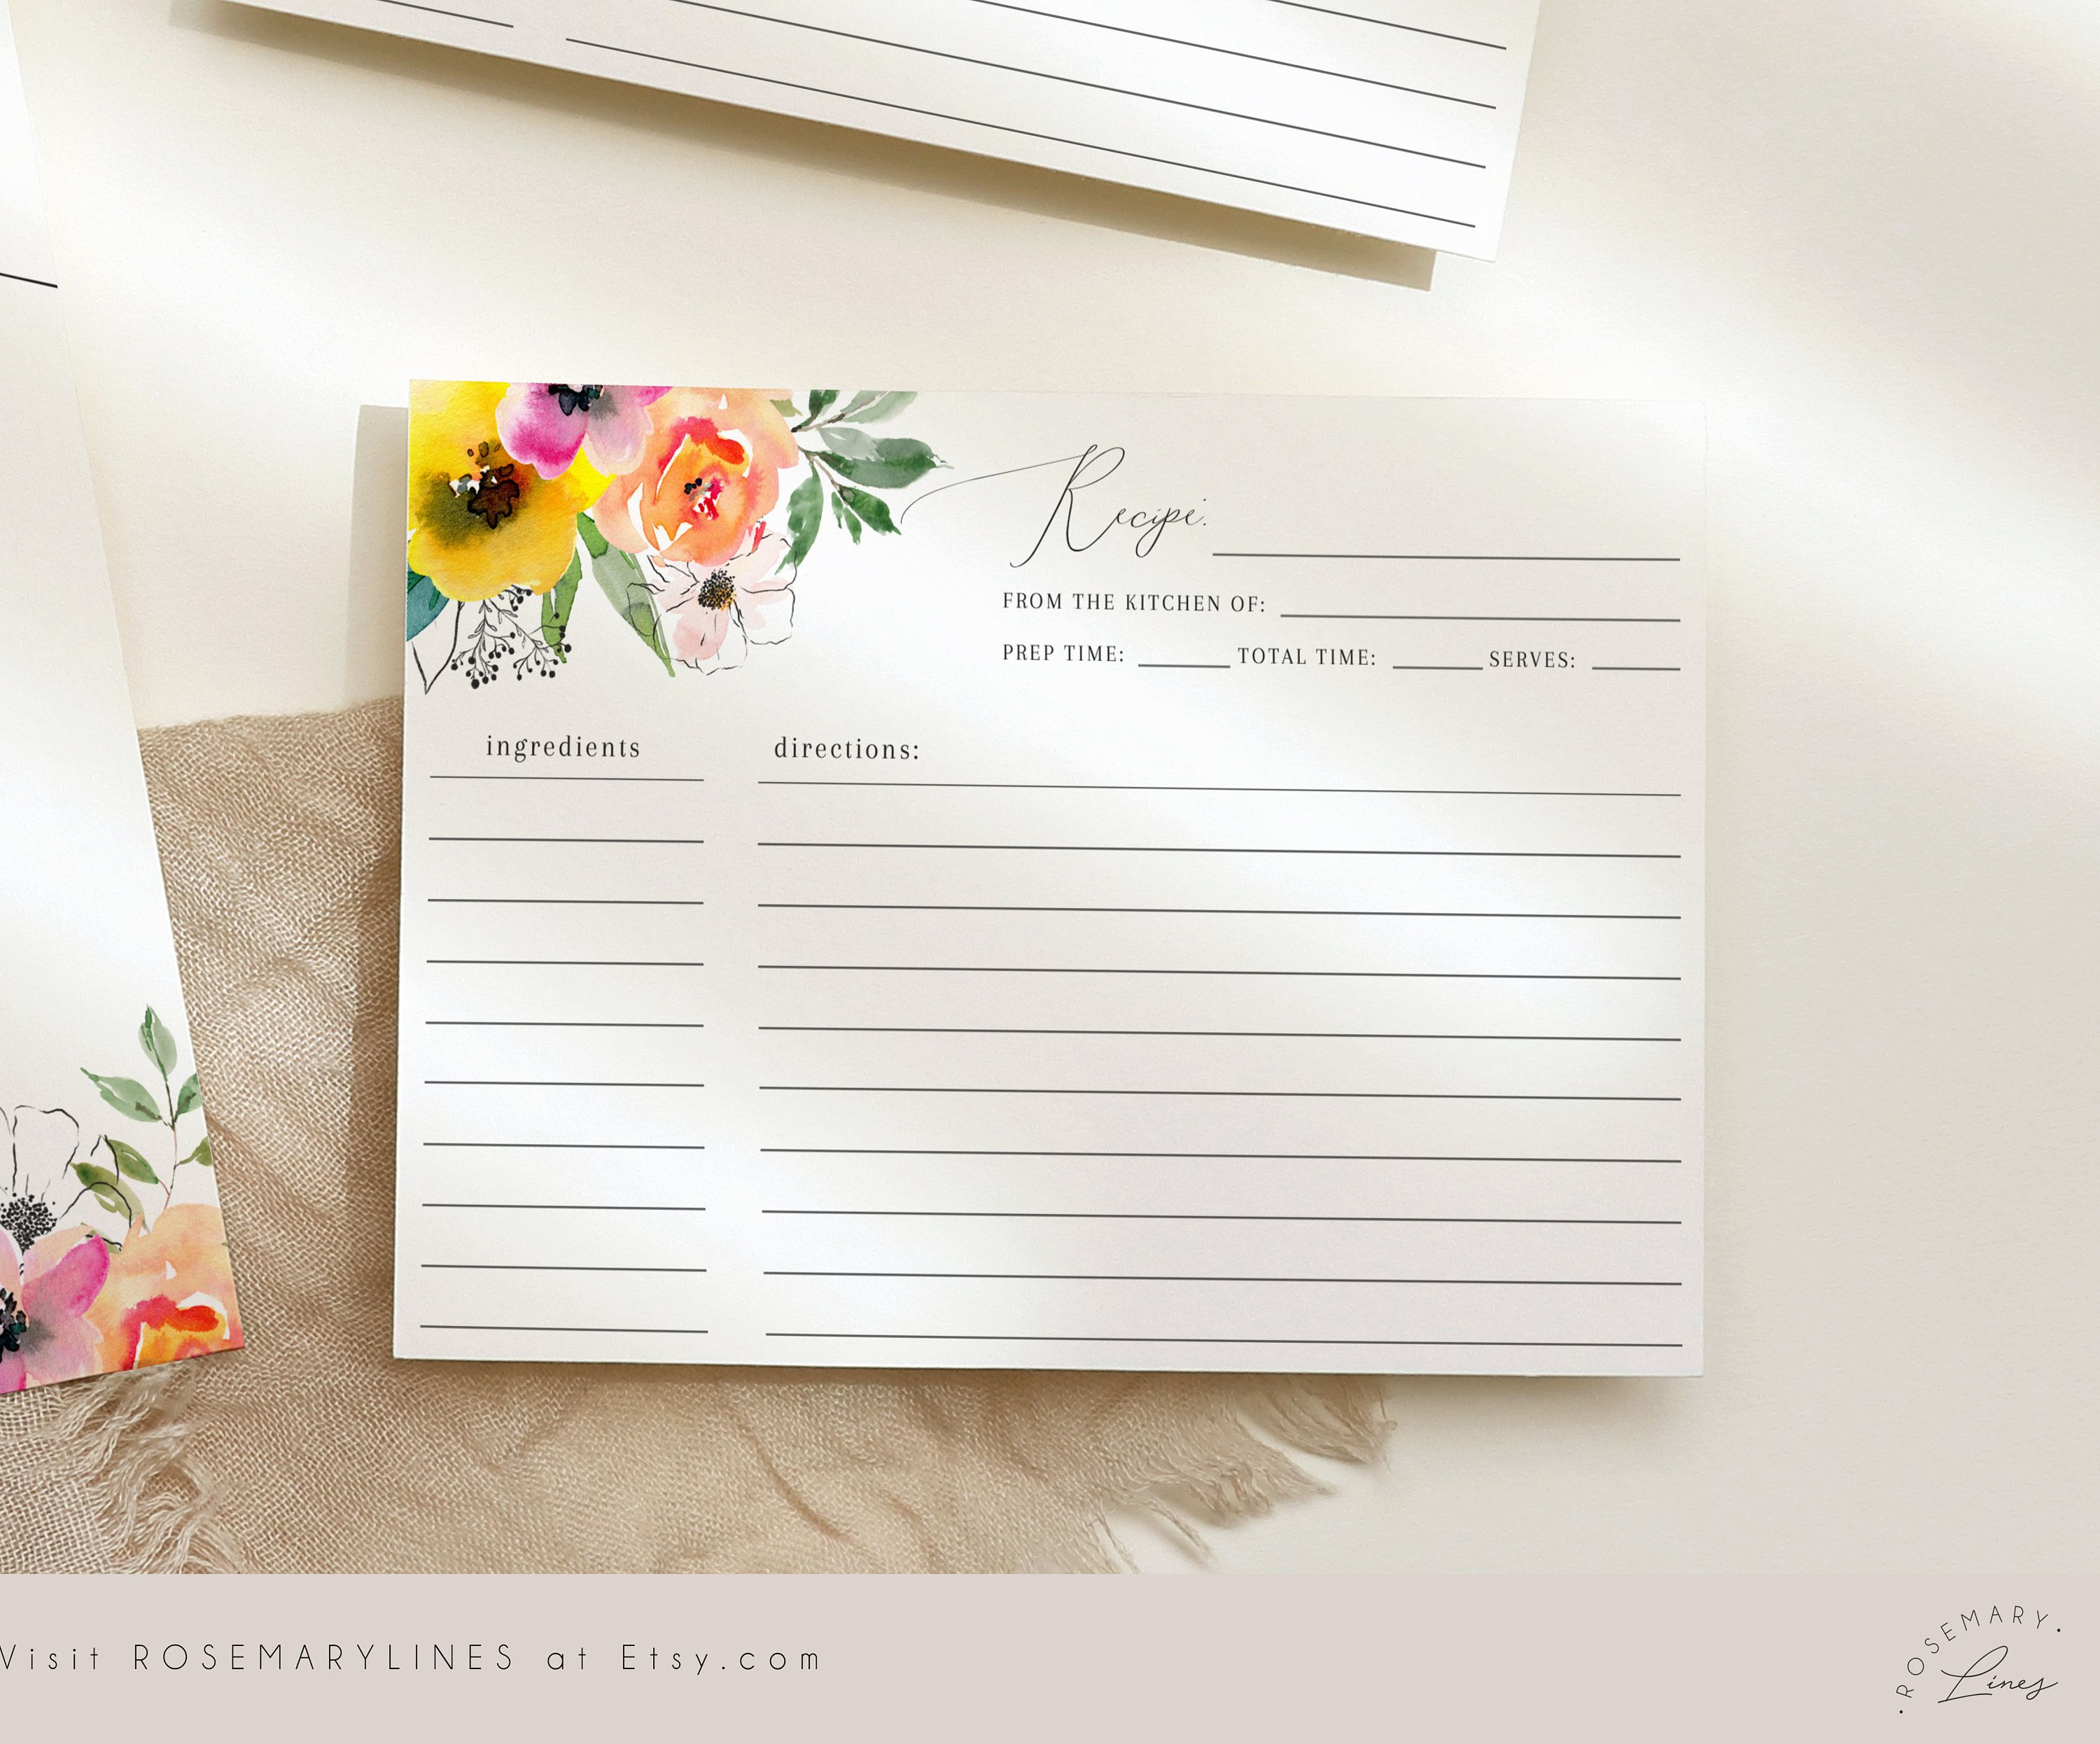 Editable Recipe Card Template Bright Floral Bridal Shower Etsy In 2021 Printable Bridal Shower Games Recipe Cards Template Bridal Shower Recipes Cards